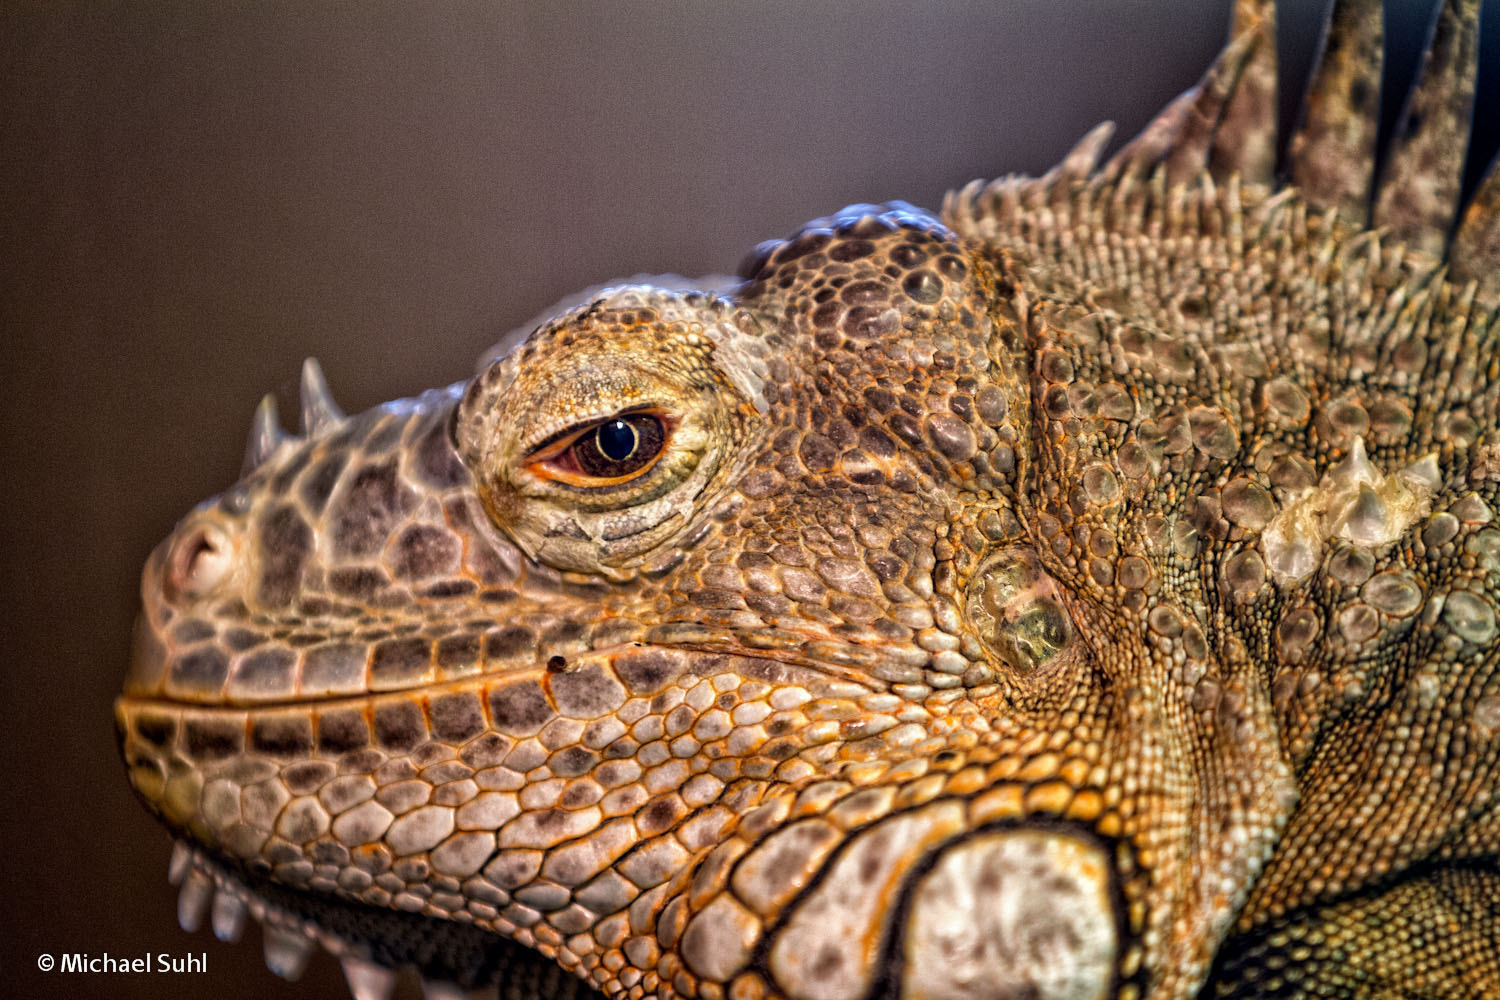 Photograph Iguana by Michael Suhl on 500px